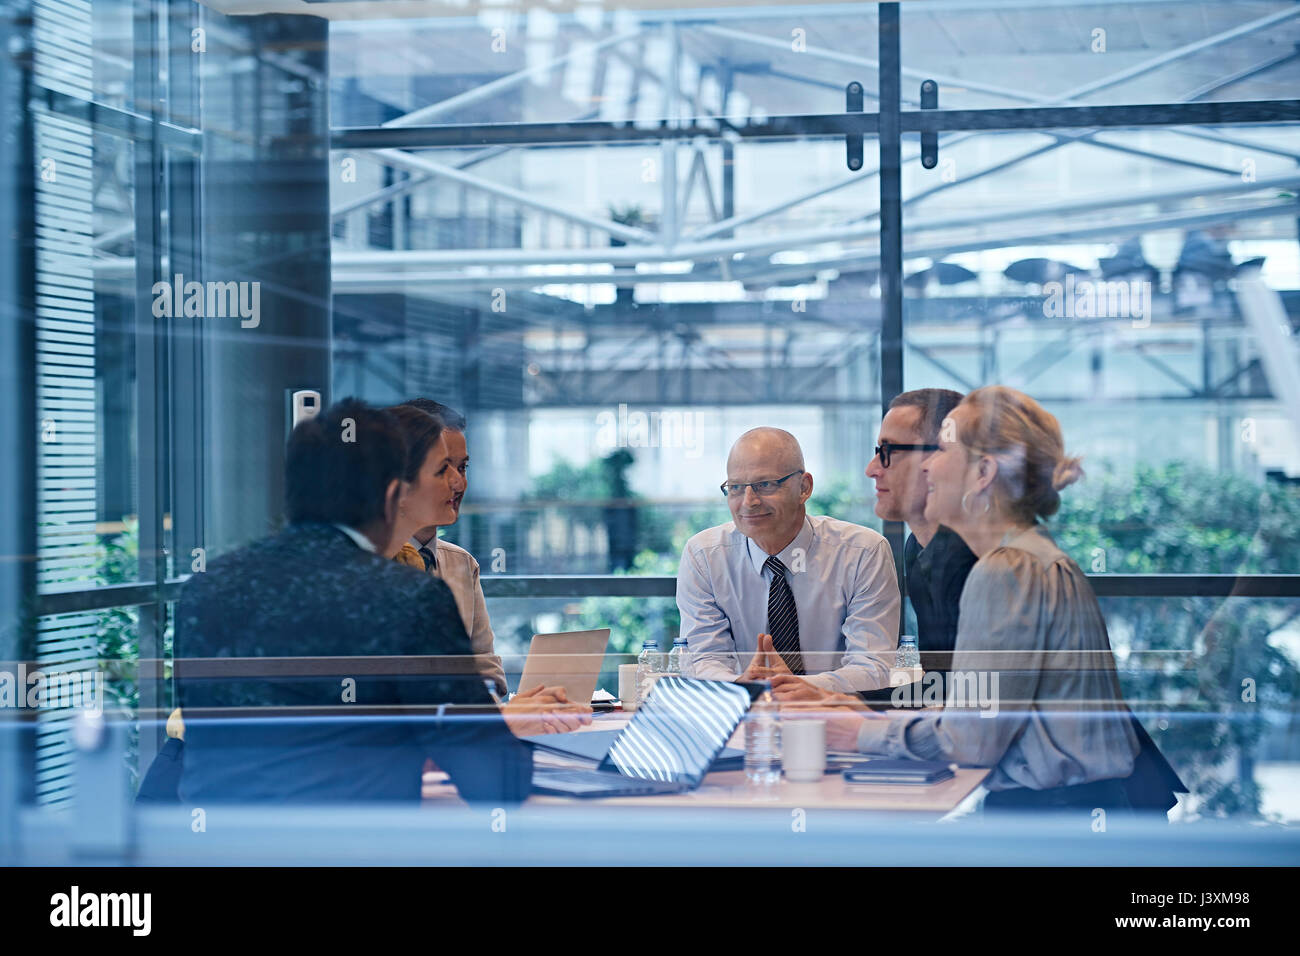 Window view of businesswomen and men having discussion in conference room - Stock Image